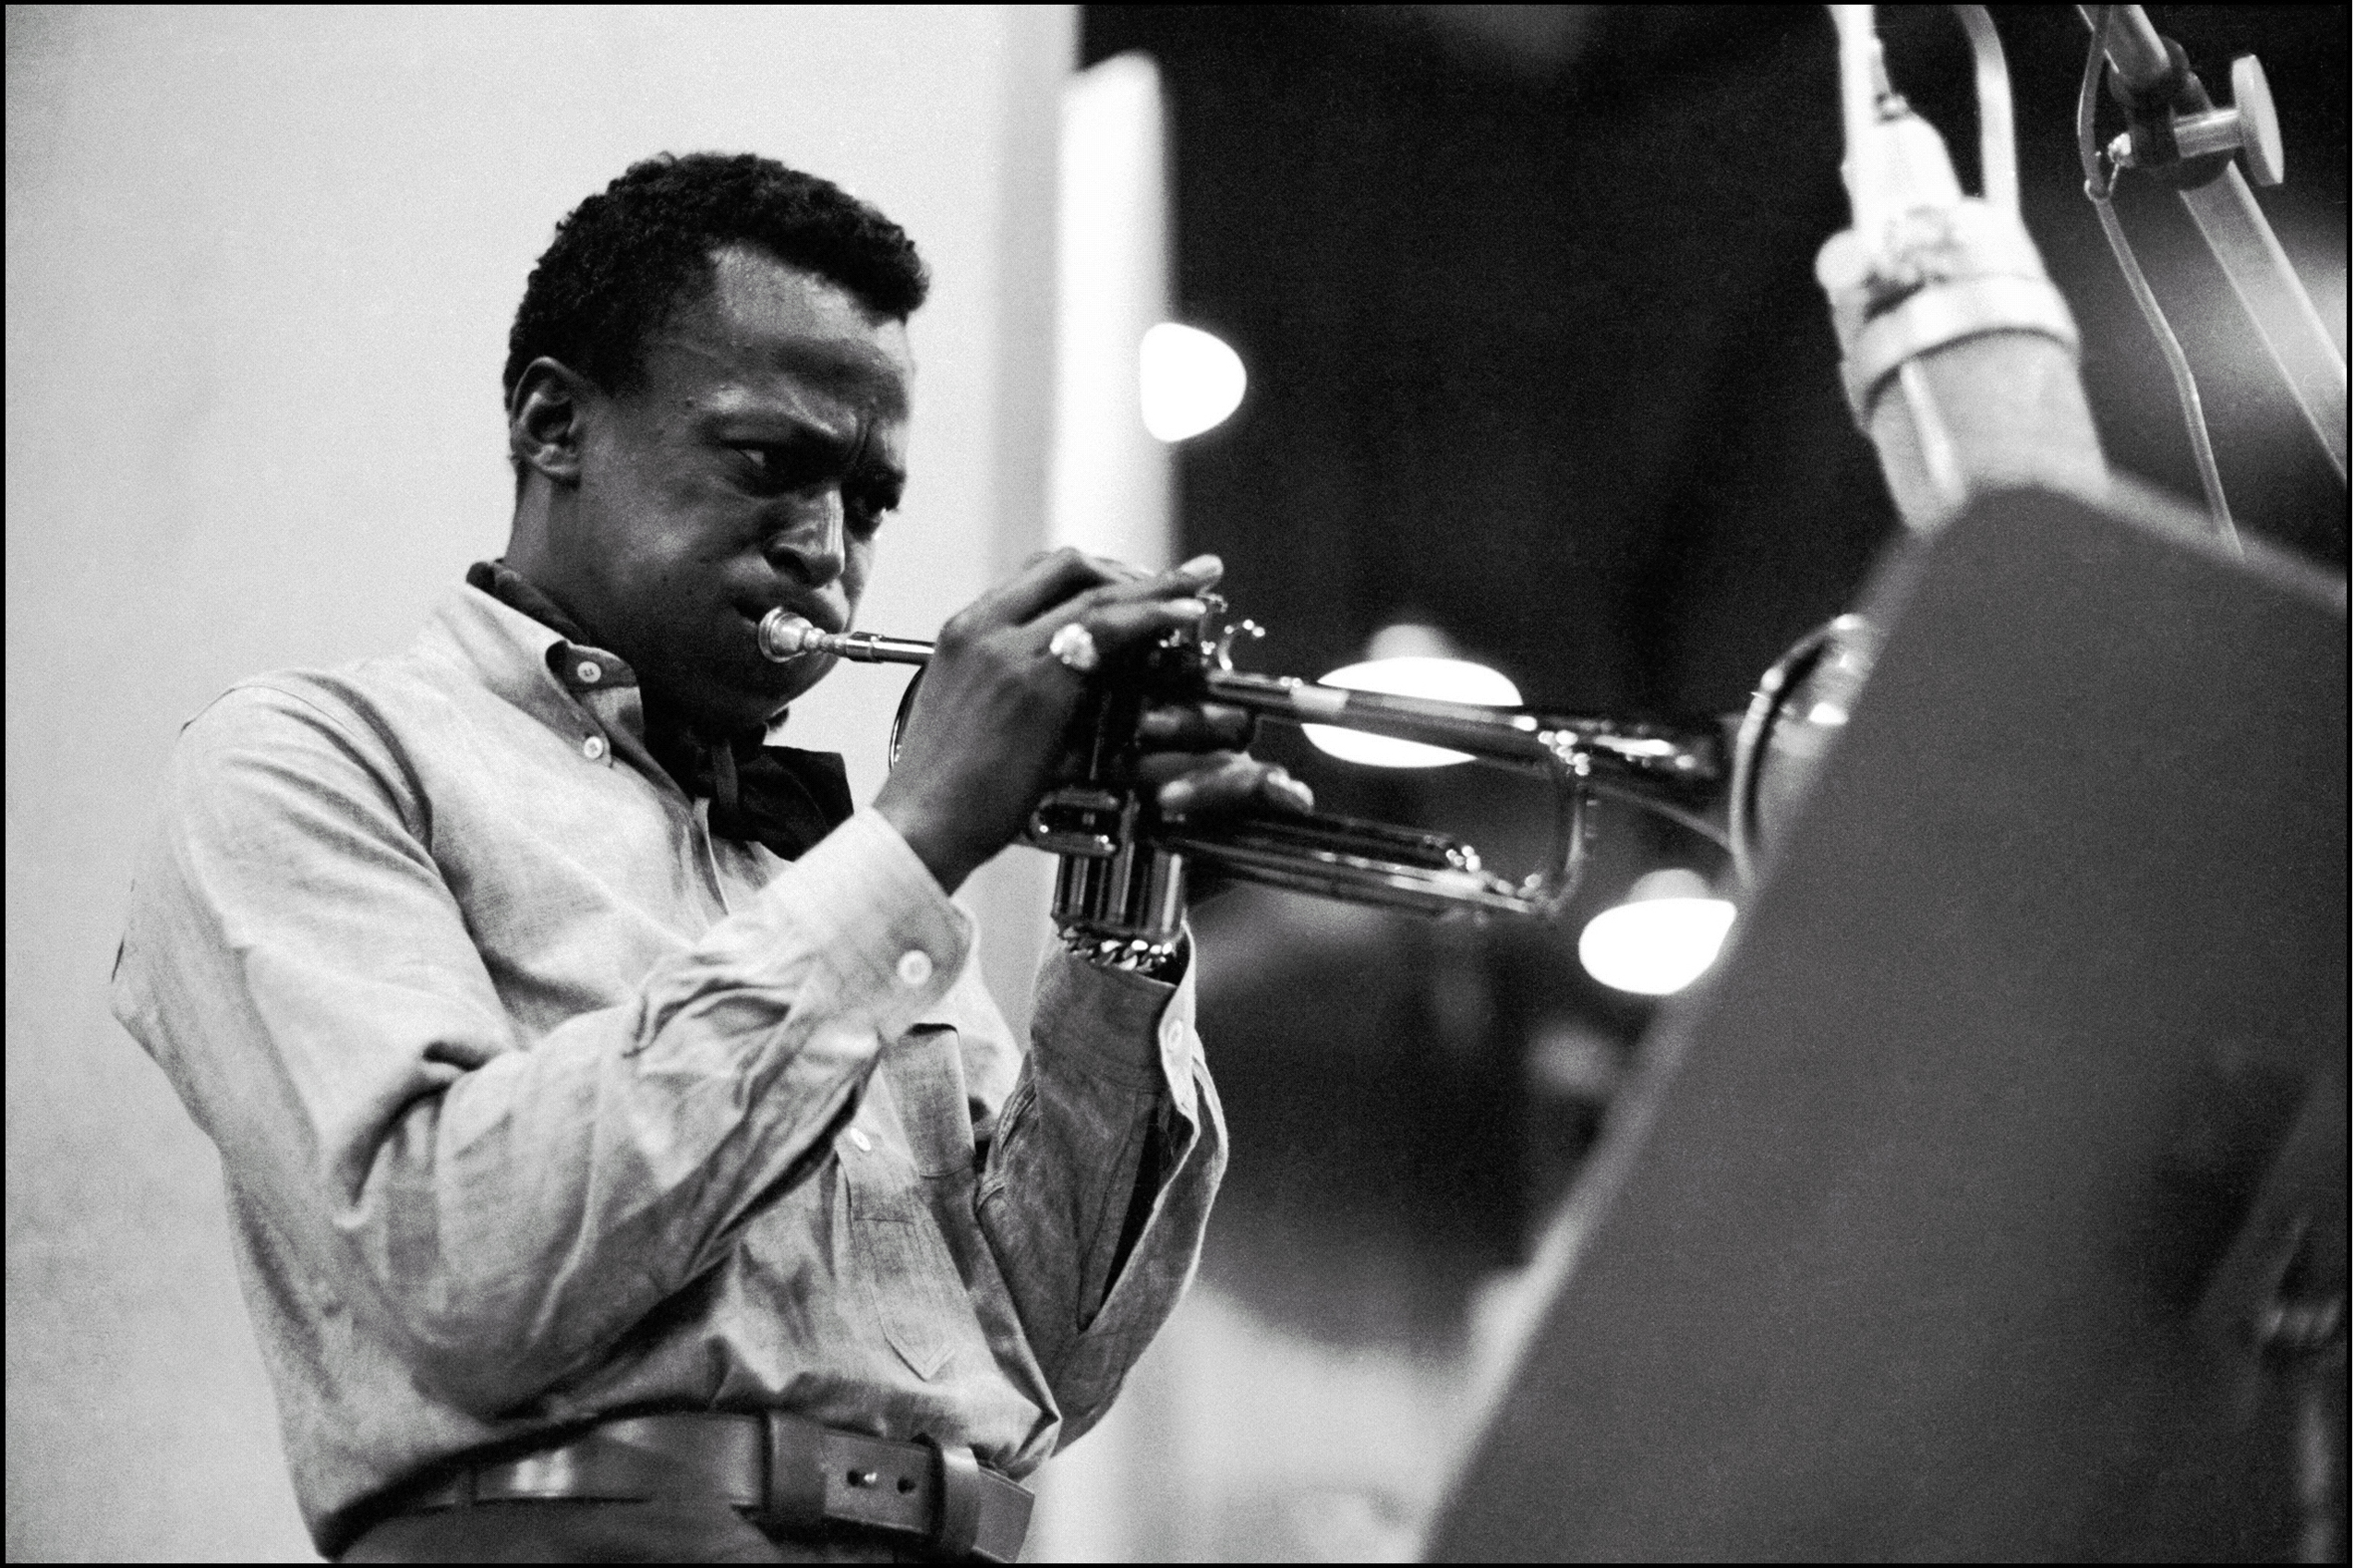 http://mediad.publicbroadcasting.net/p/kwgs/files/201405/miles-davis-photo.jpg